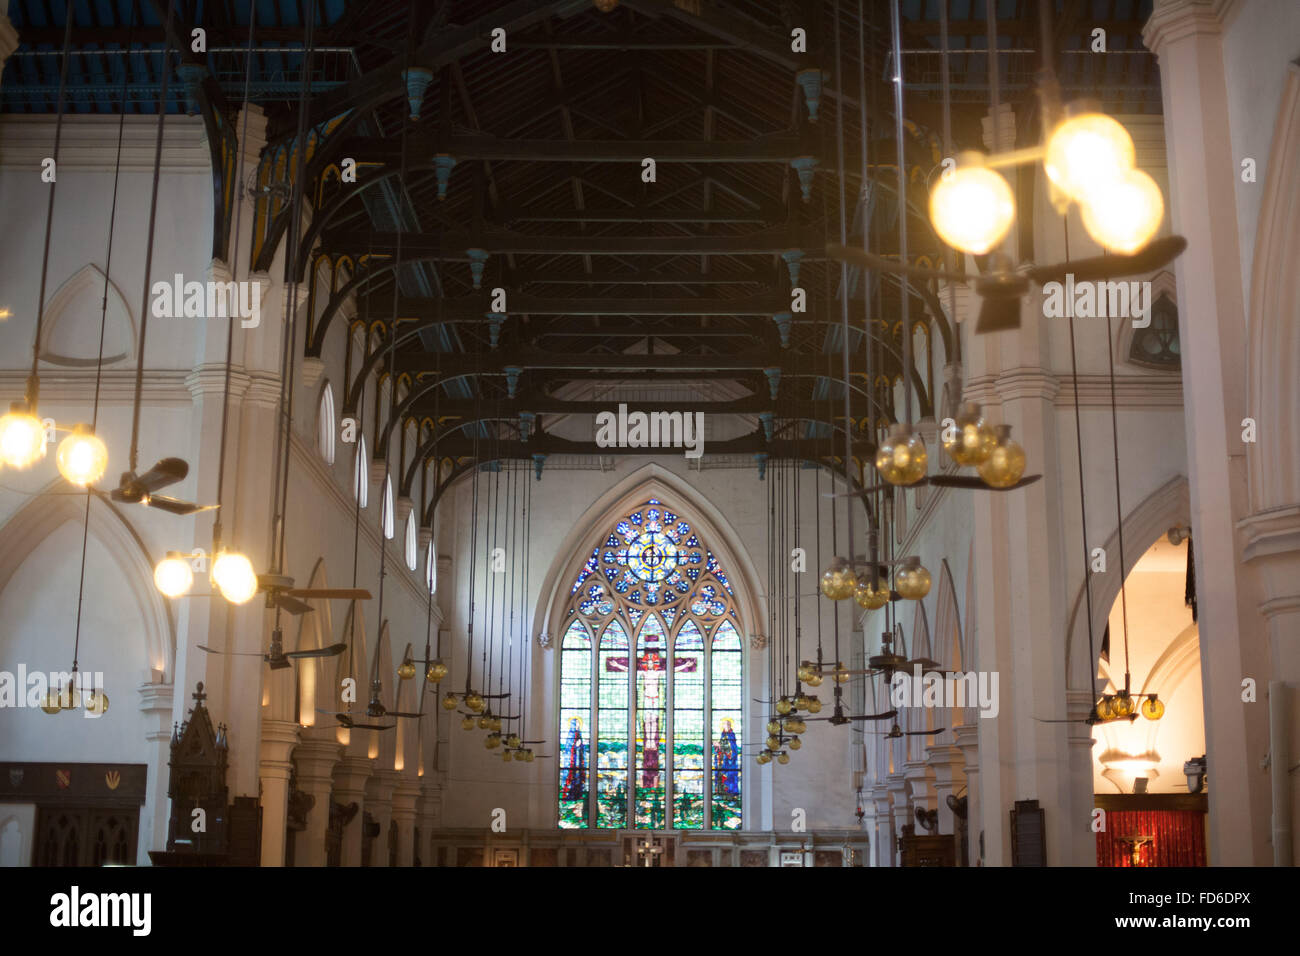 Hanging Lights Against Strained Glass Window At Church - Stock Image